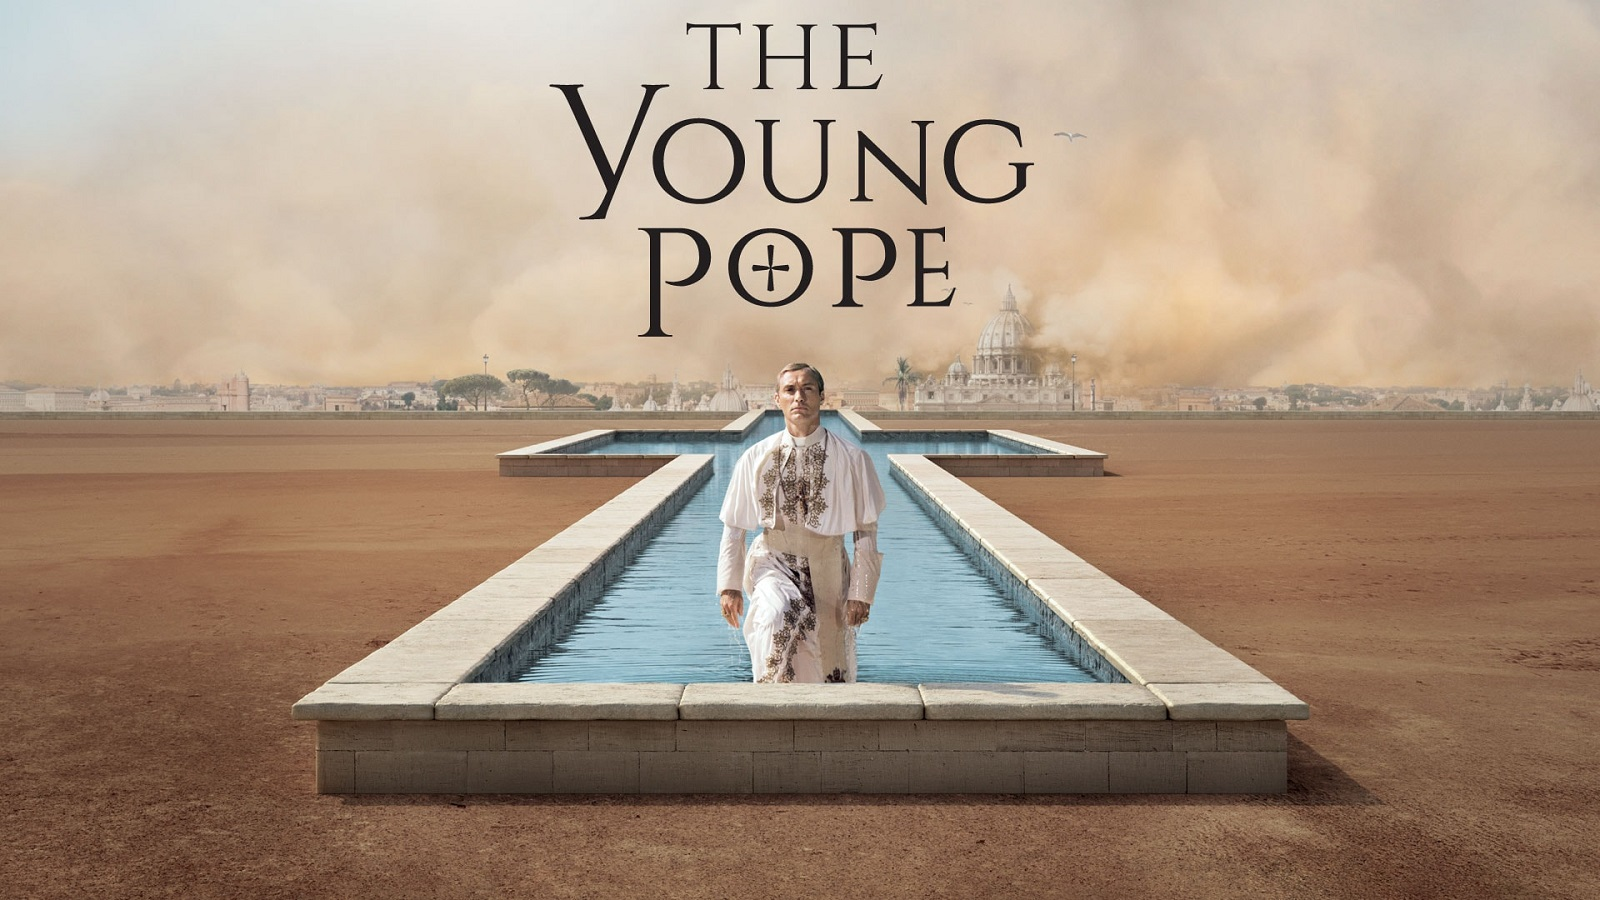 Affiche de la série the young pope